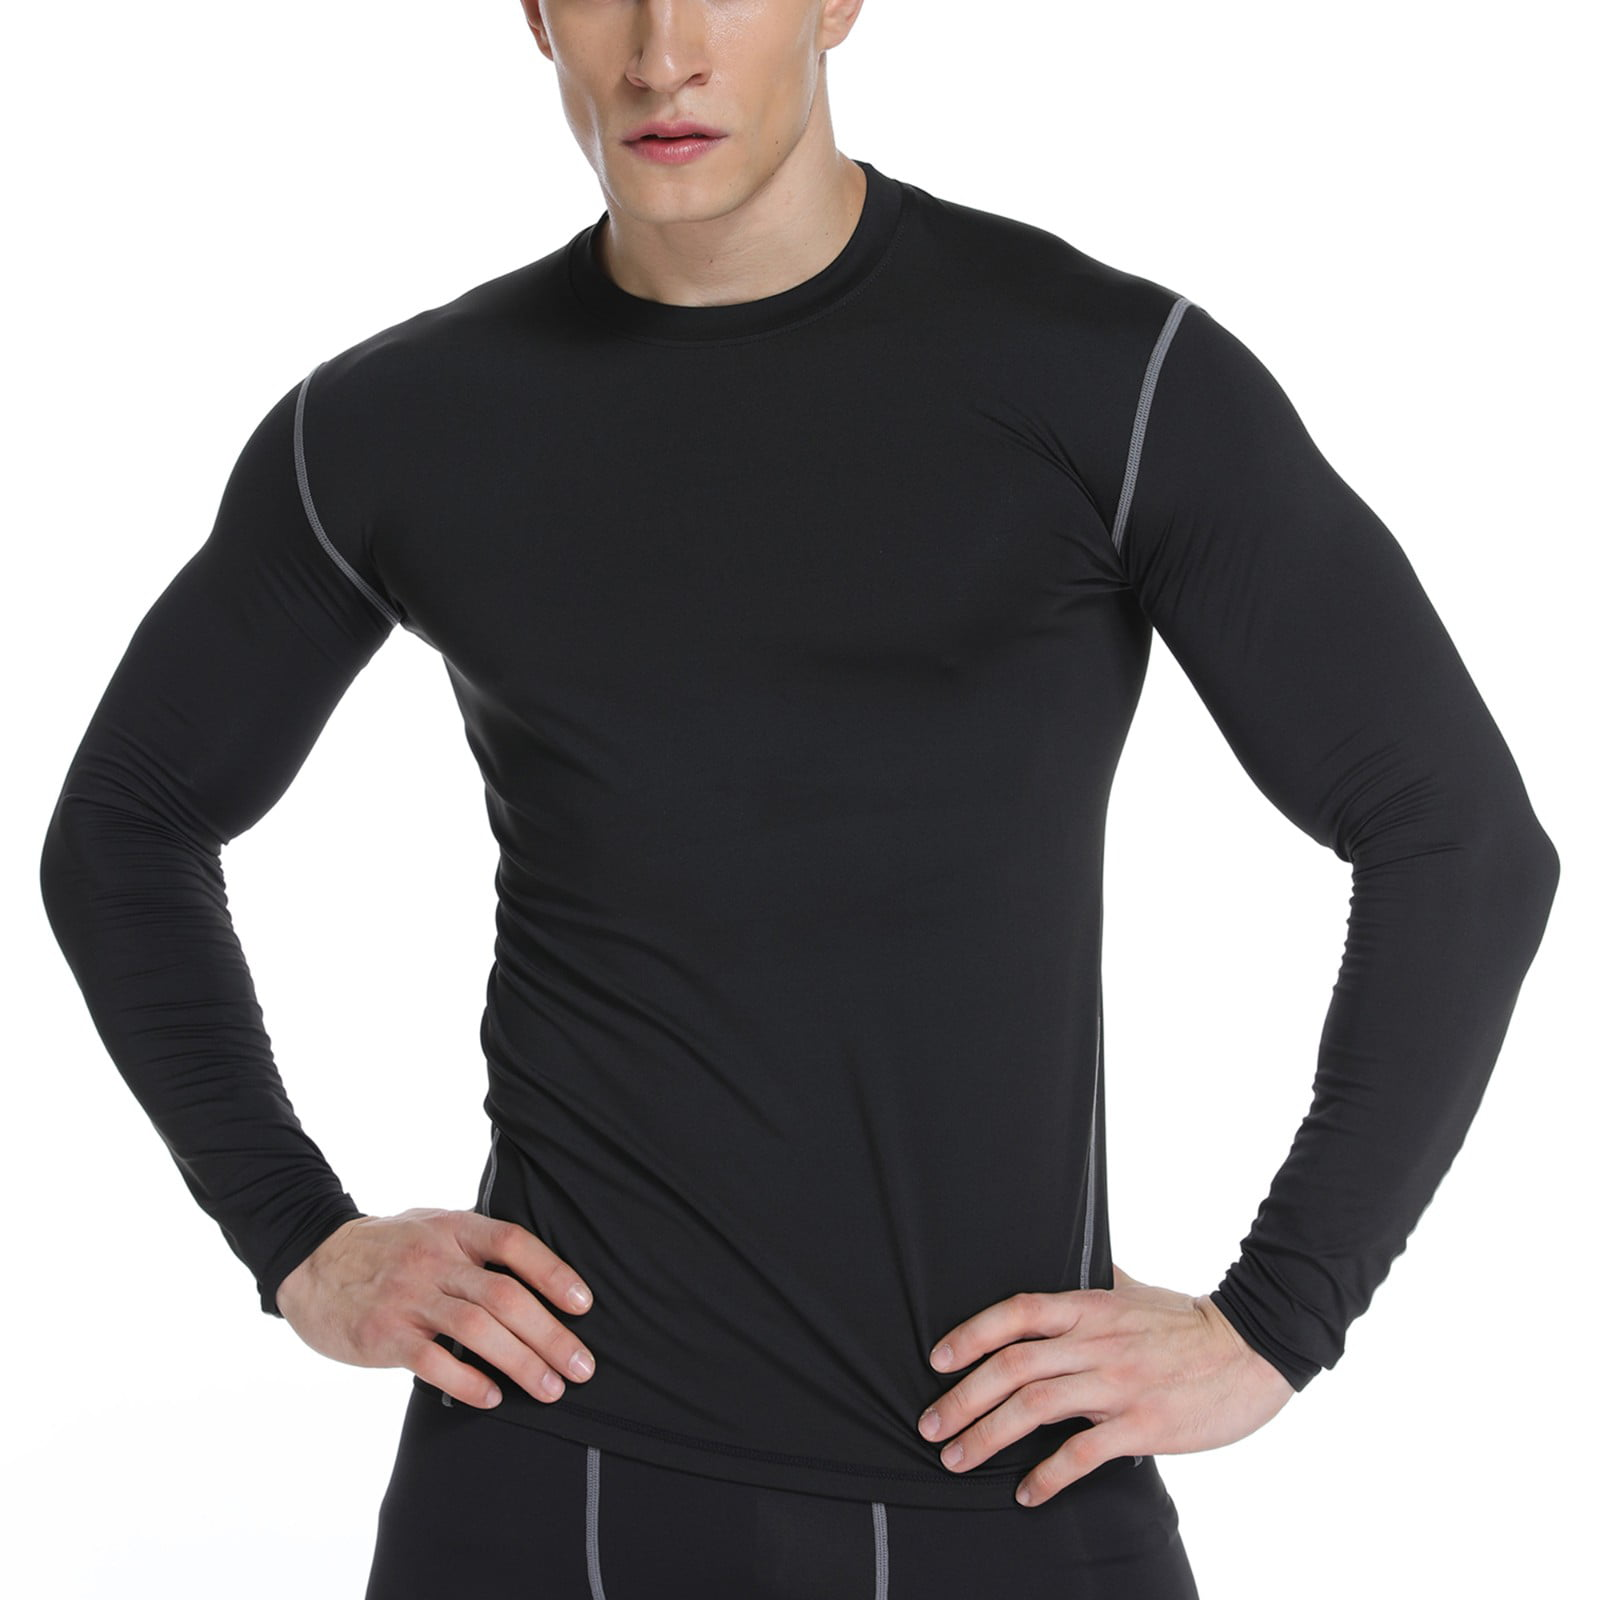 Fit Skyn Dry Fit Shirt